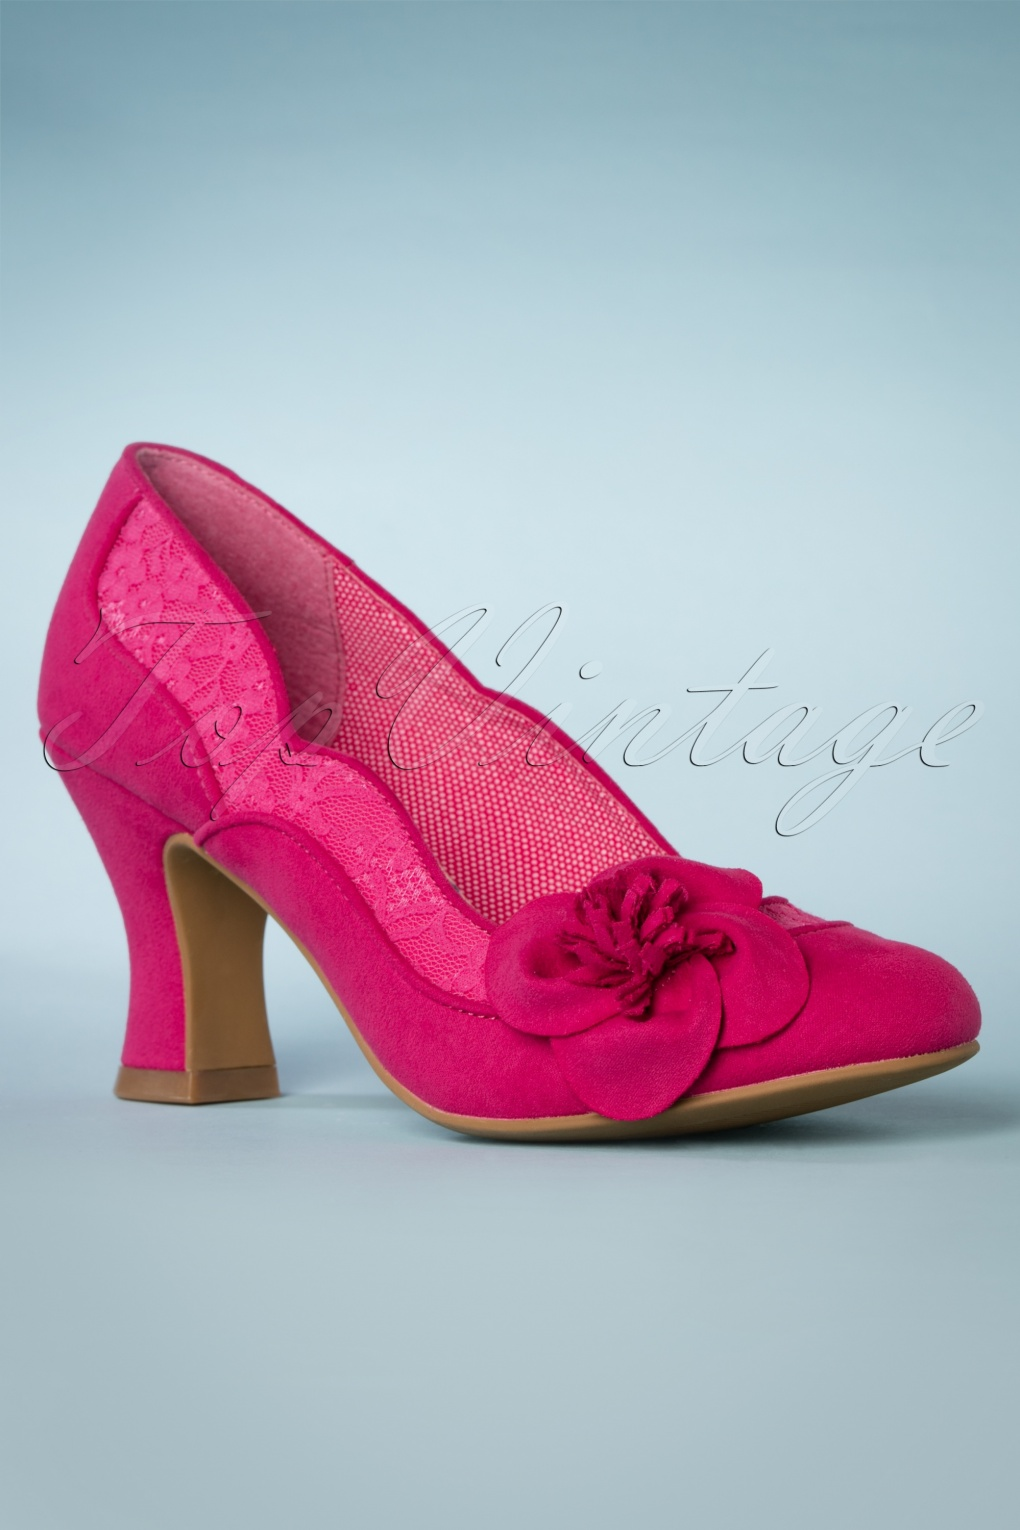 Pin Up Shoes- Heels, Pumps & Flats 40s Veronica Pumps in Fuchsia £64.98 AT vintagedancer.com